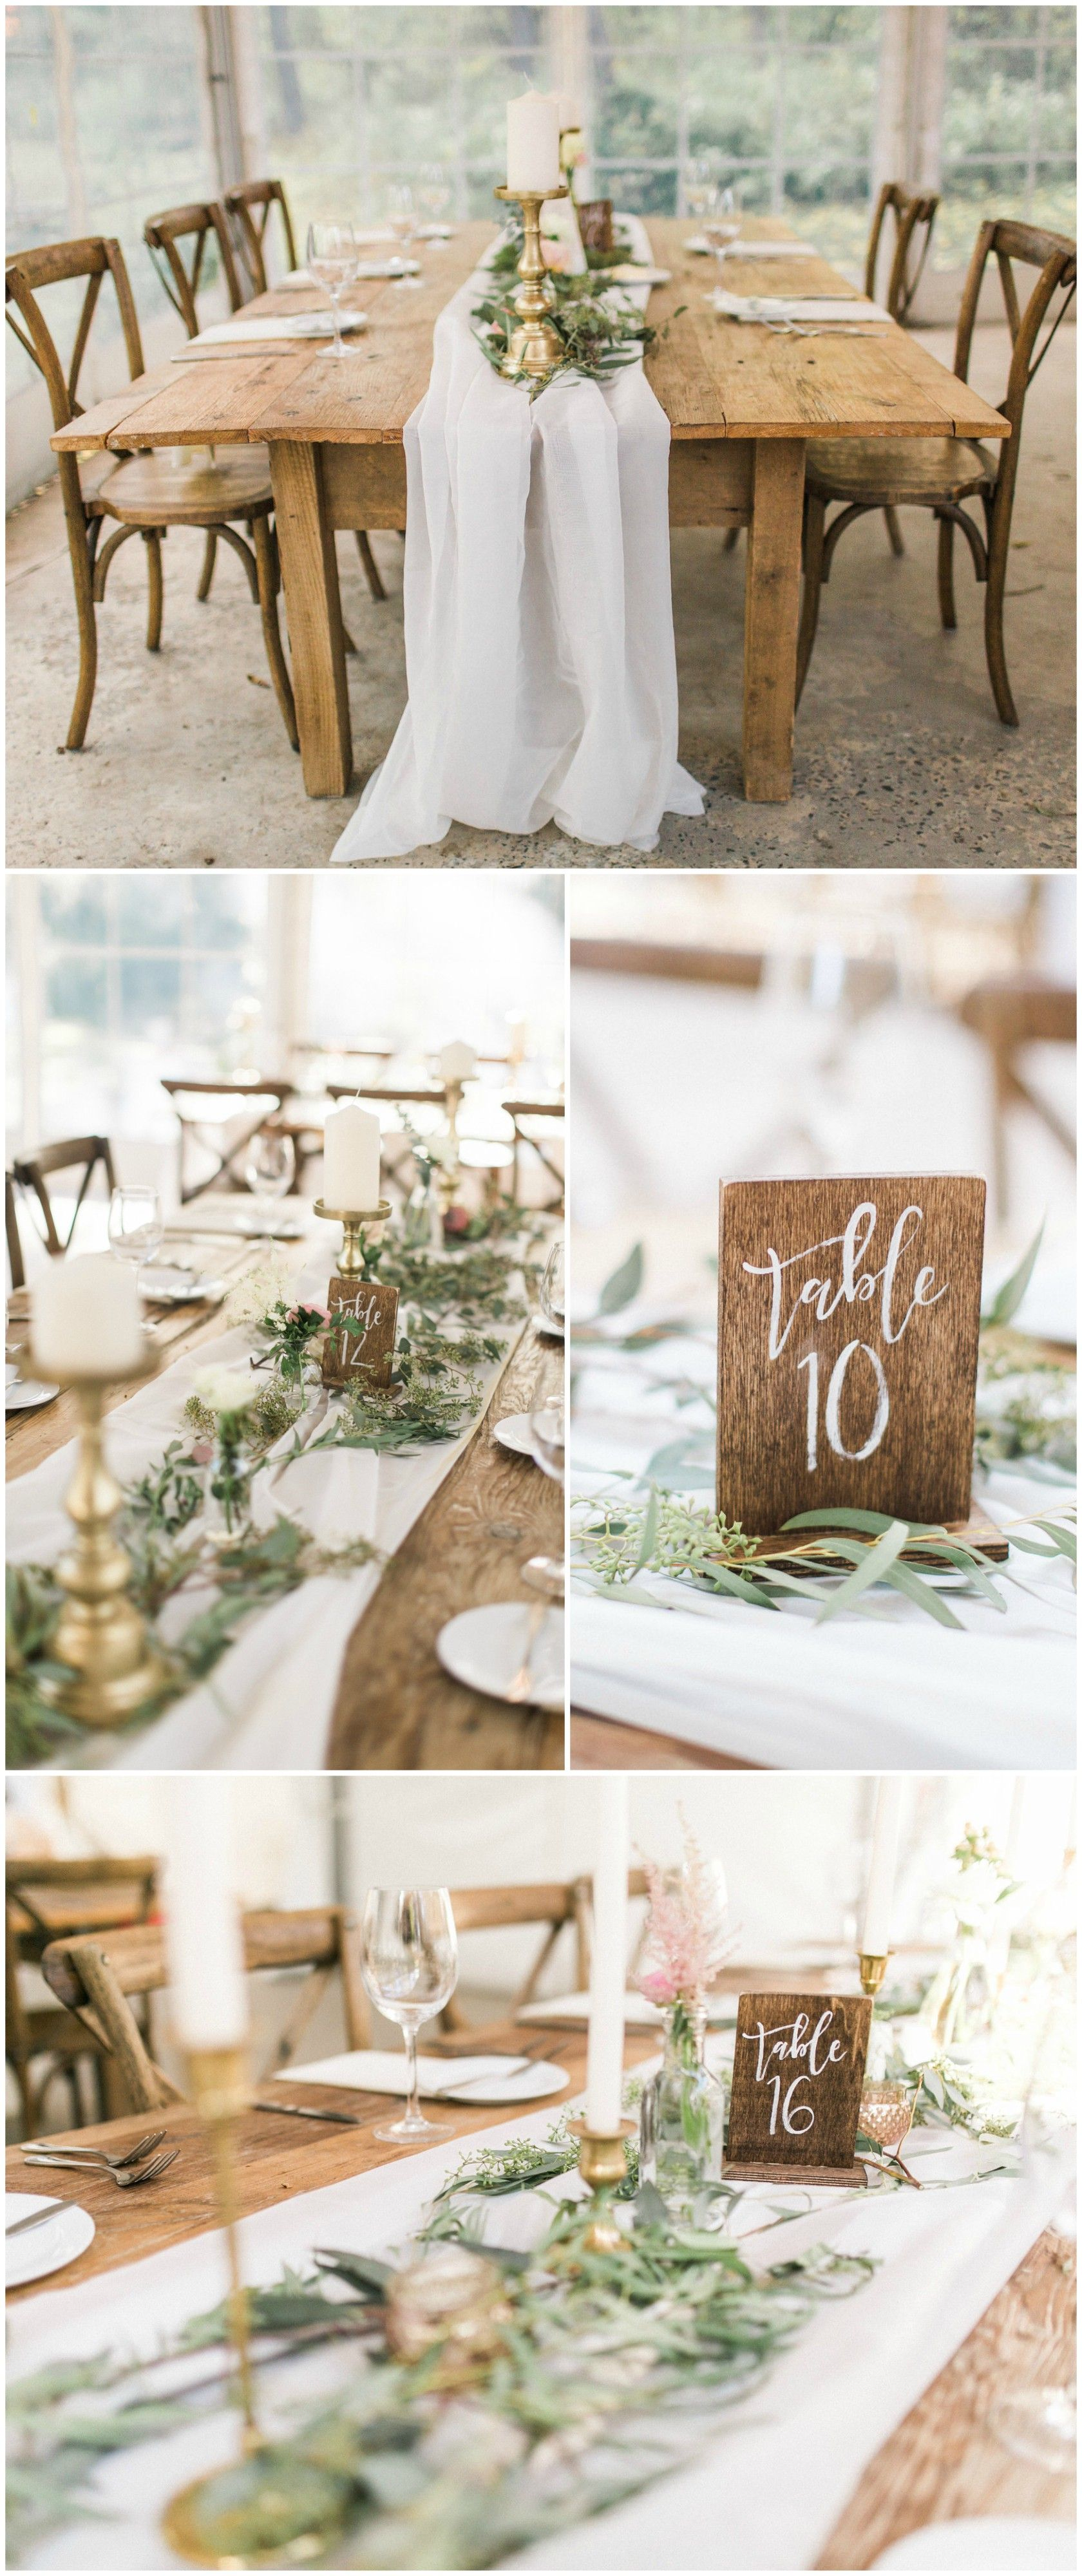 The Smarter Way to Wed | Block table, Wood tables and Wooden blocks